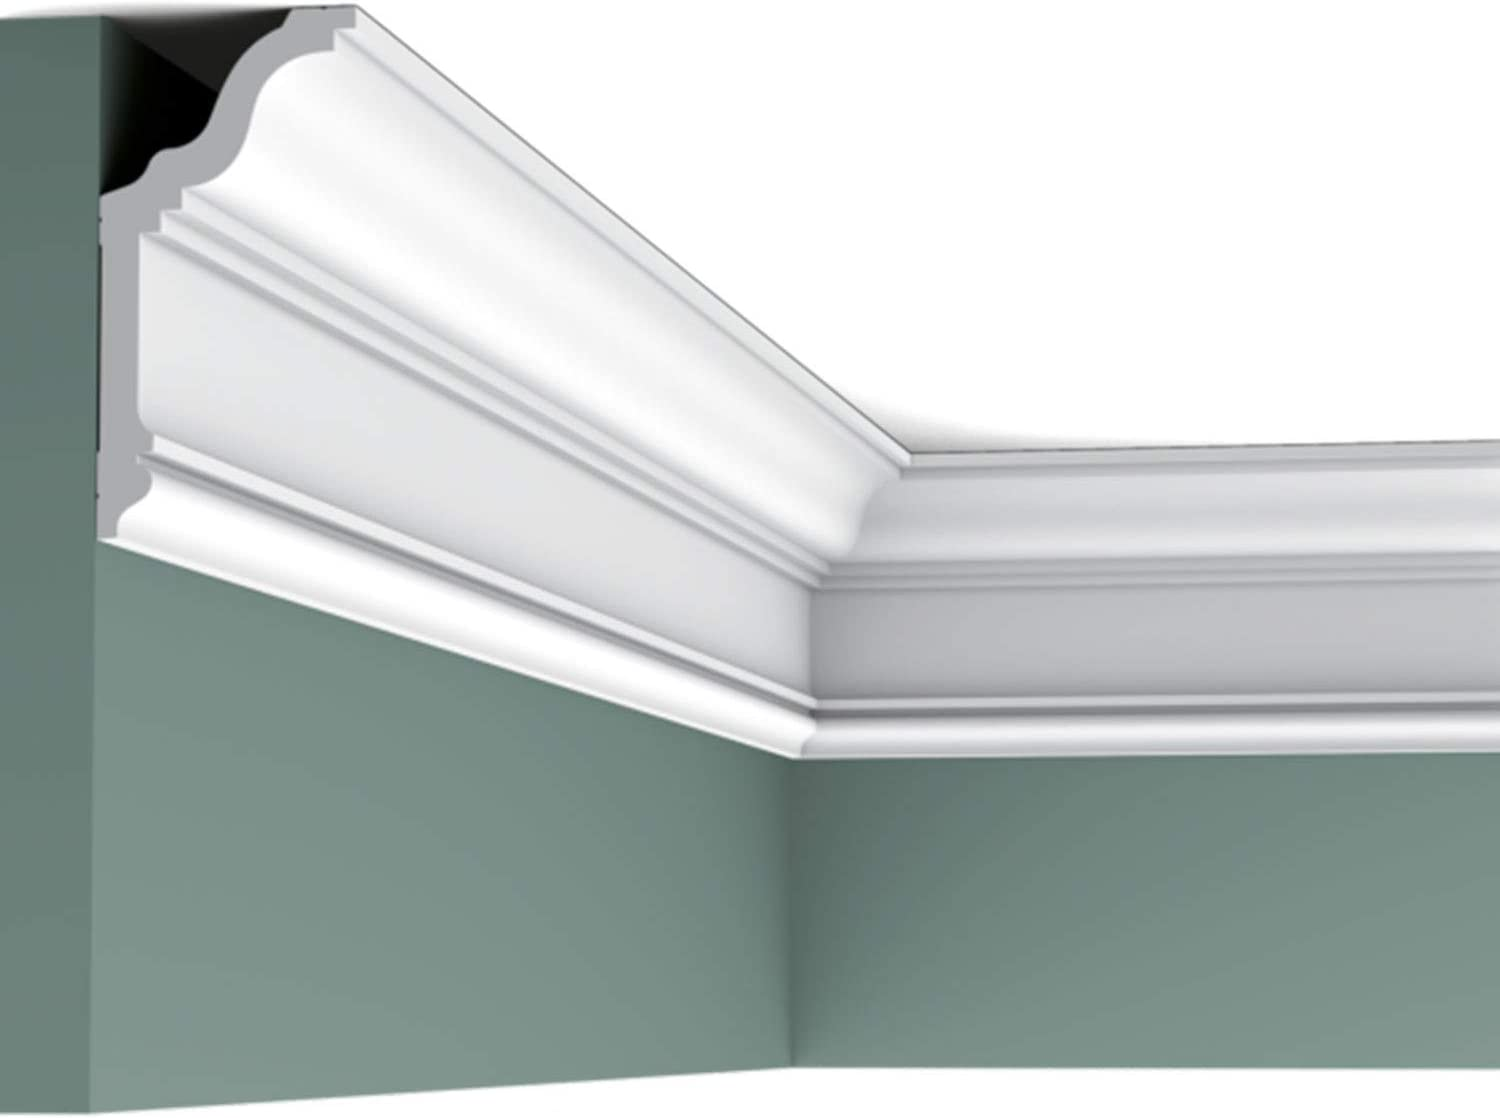 Orac Decor CX192 | High Impact Polystyrene | Crown Moulding | Primed White | 78in Long